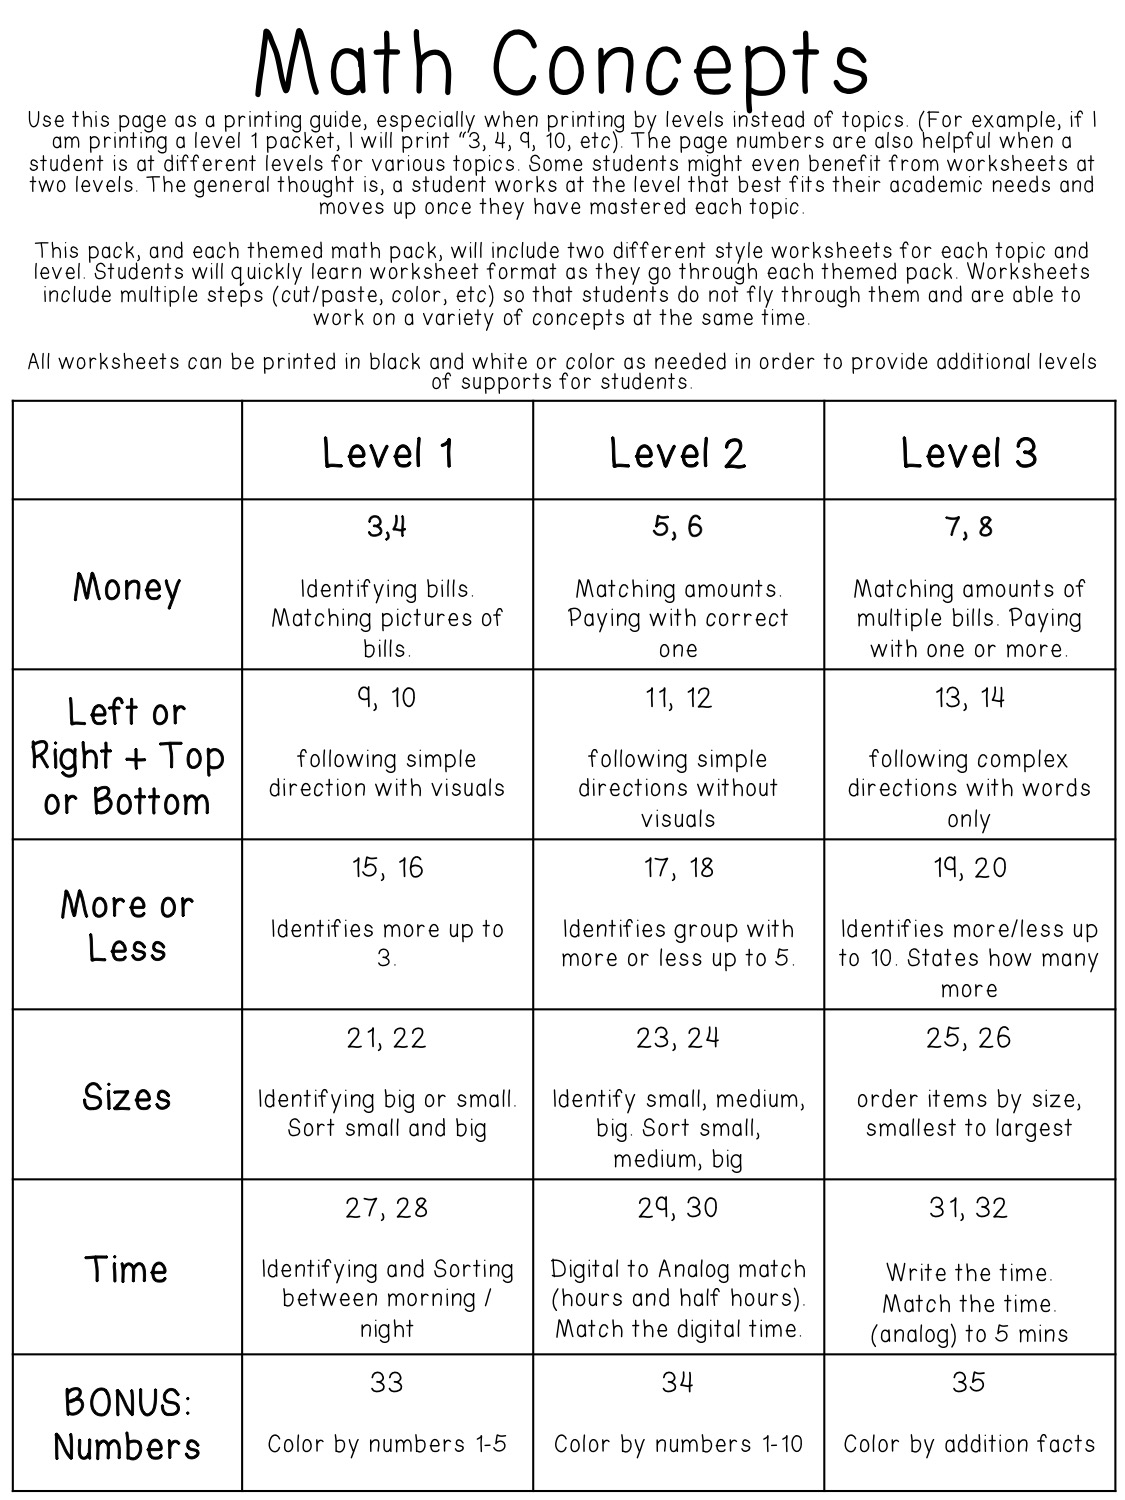 Printables Life Skills Math Worksheets breezy special ed math life skill worksheets thanksgiving themed in my classroom we do a worksheet each day and then activity that corresponds to so are getting han